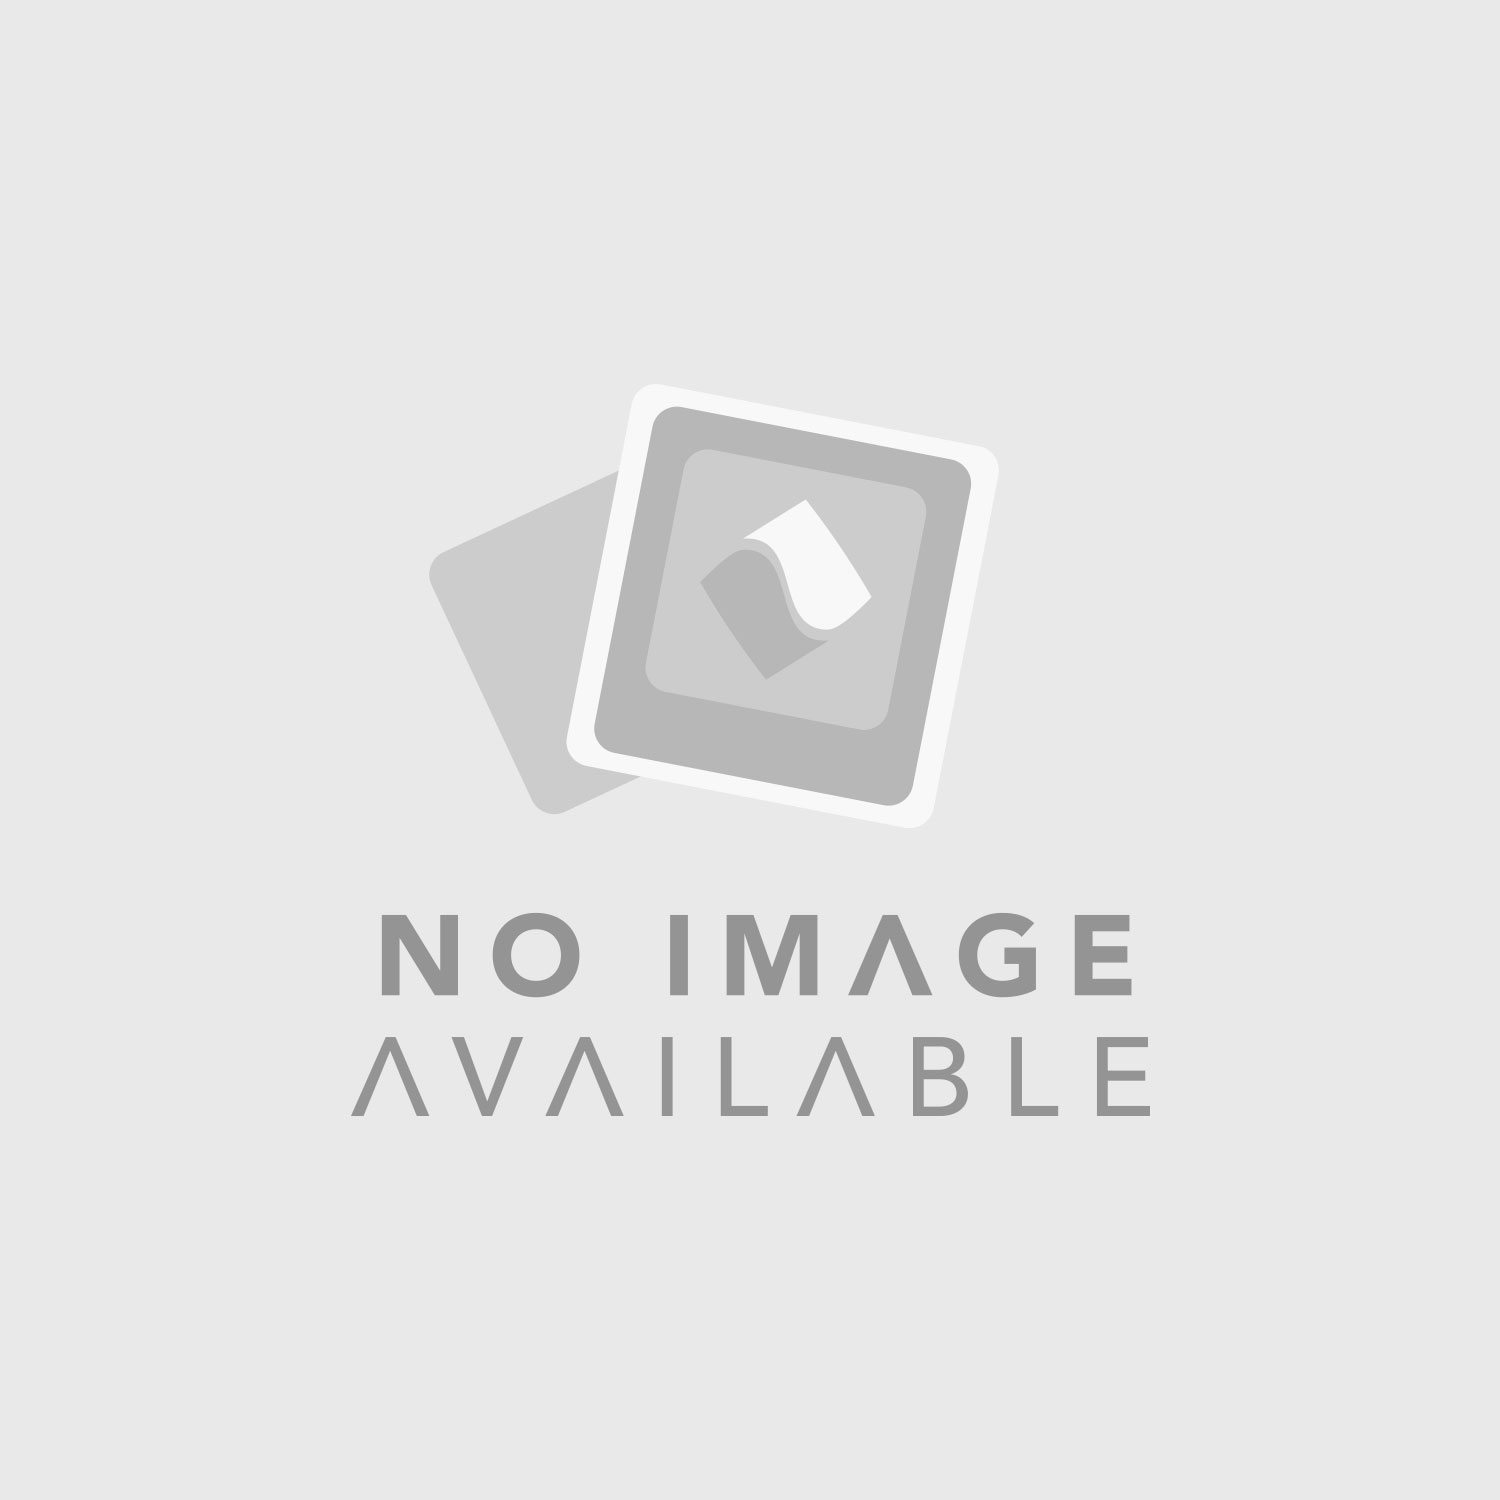 Audix TM1 Plus Test & Measurement Microphone